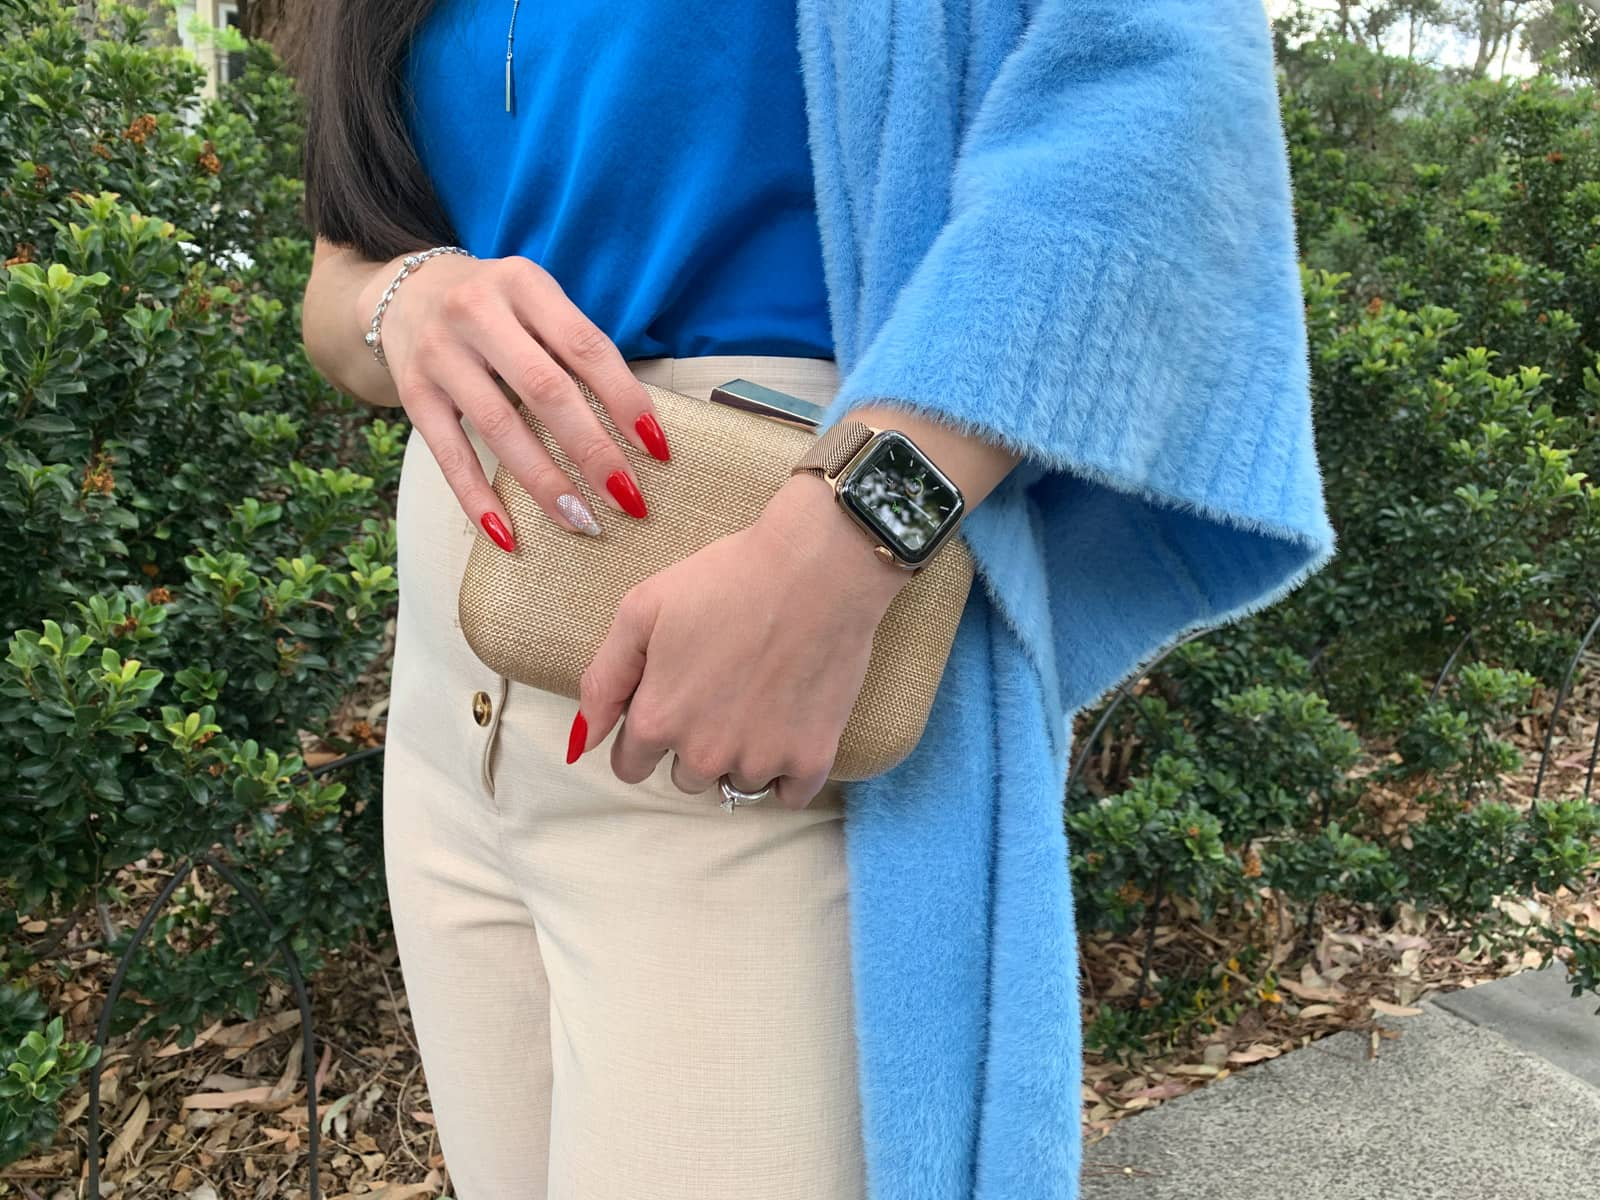 A close-up of a woman's red manicured long nails clutching a small rounded rectangular clutch handbag. Her sky blue cardigan can be seen and she is wearing a bright blue top and light pants